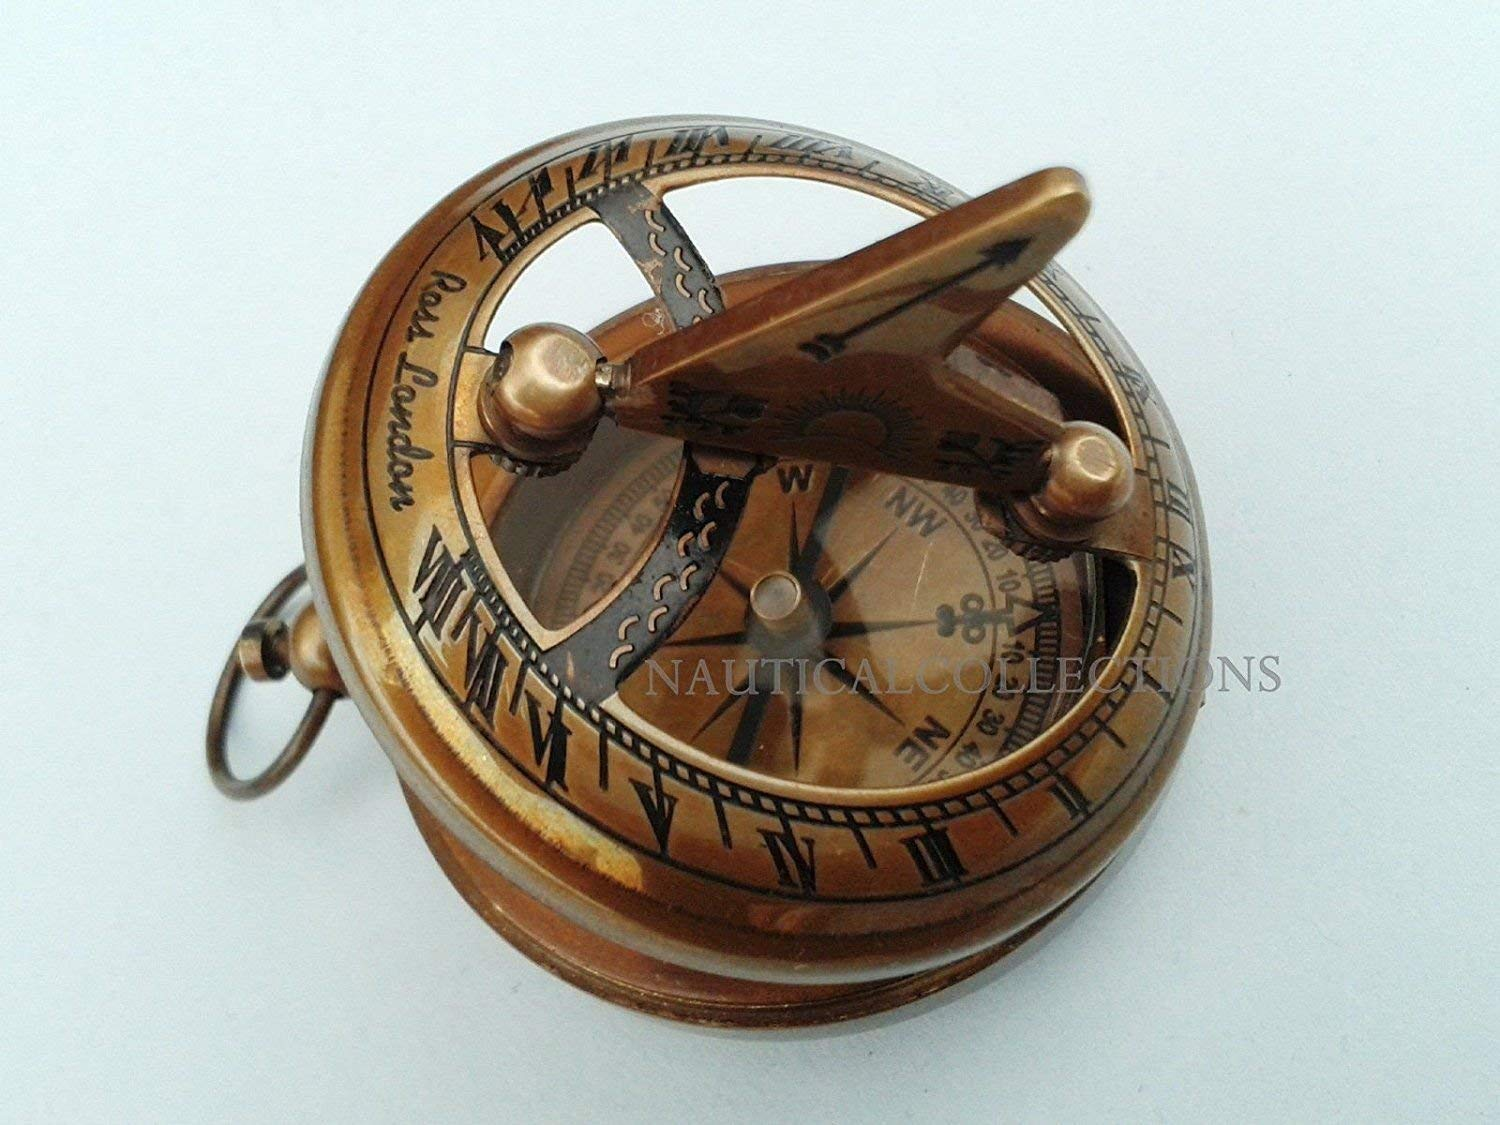 Antique Finish Brass Sundial Compass West London With Brown Leather Case Less Expensive Antiques Maritime Compasses